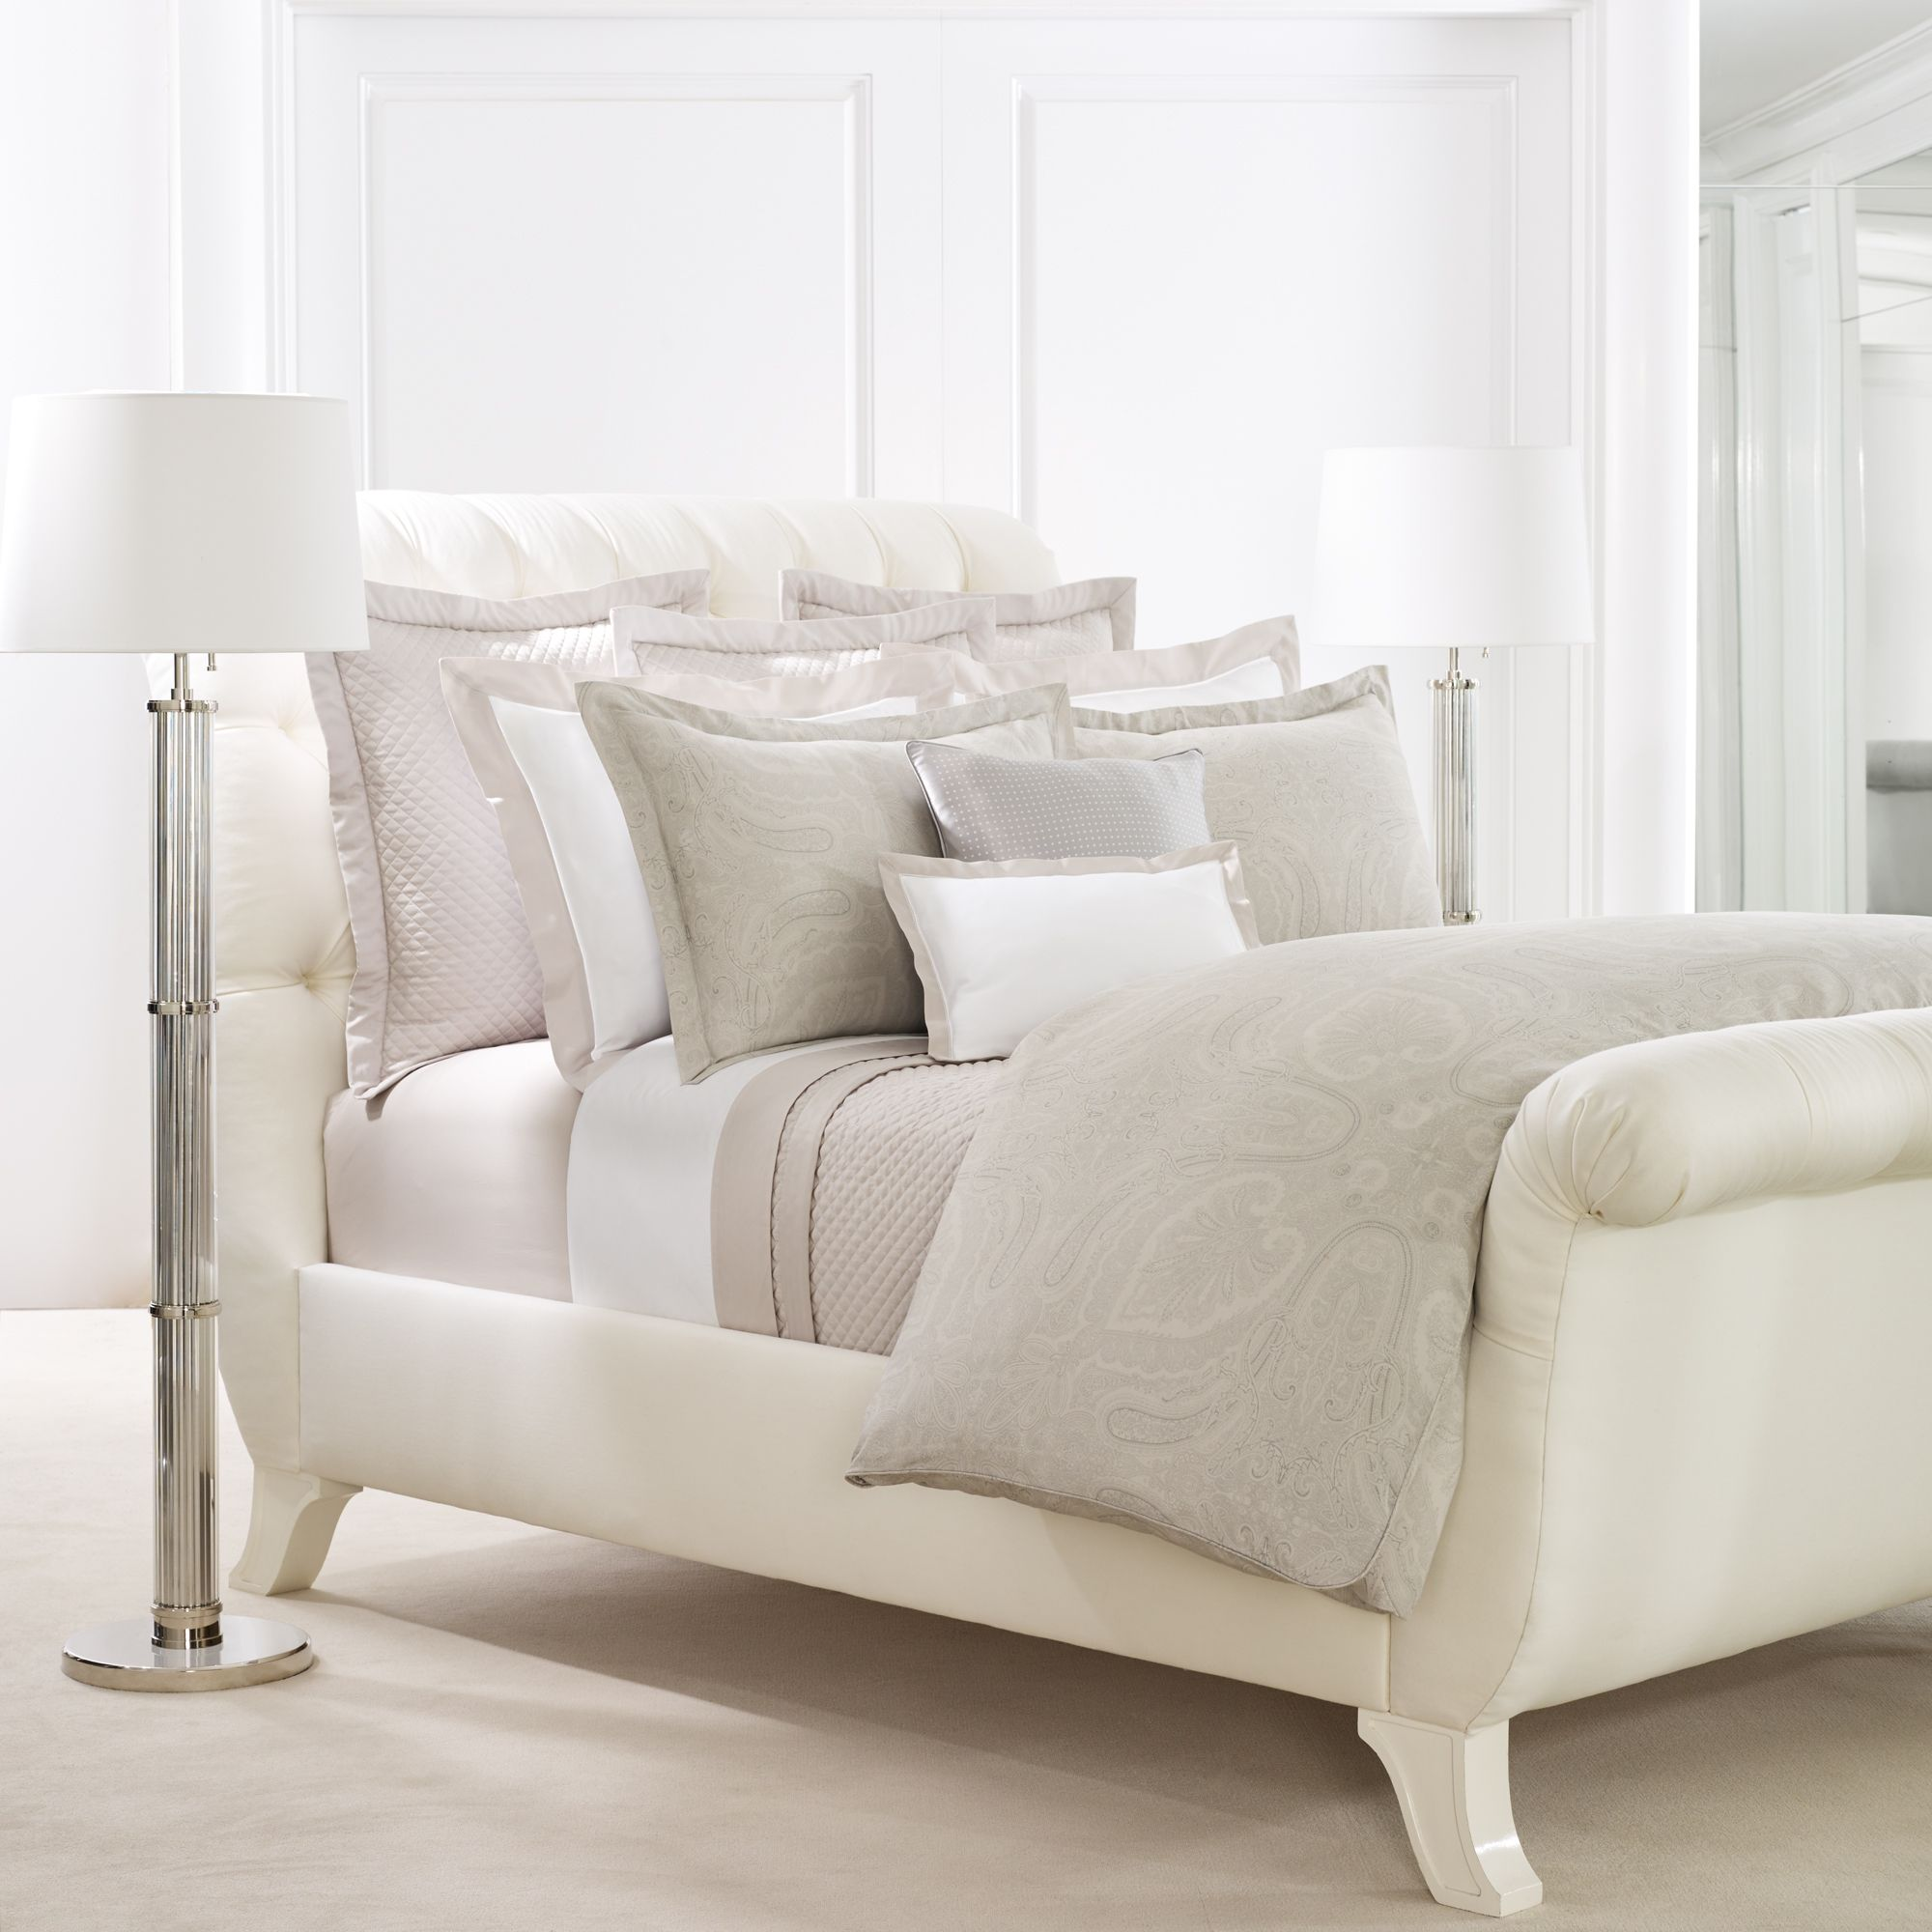 Ralph Lauren Bedding House of Fraser